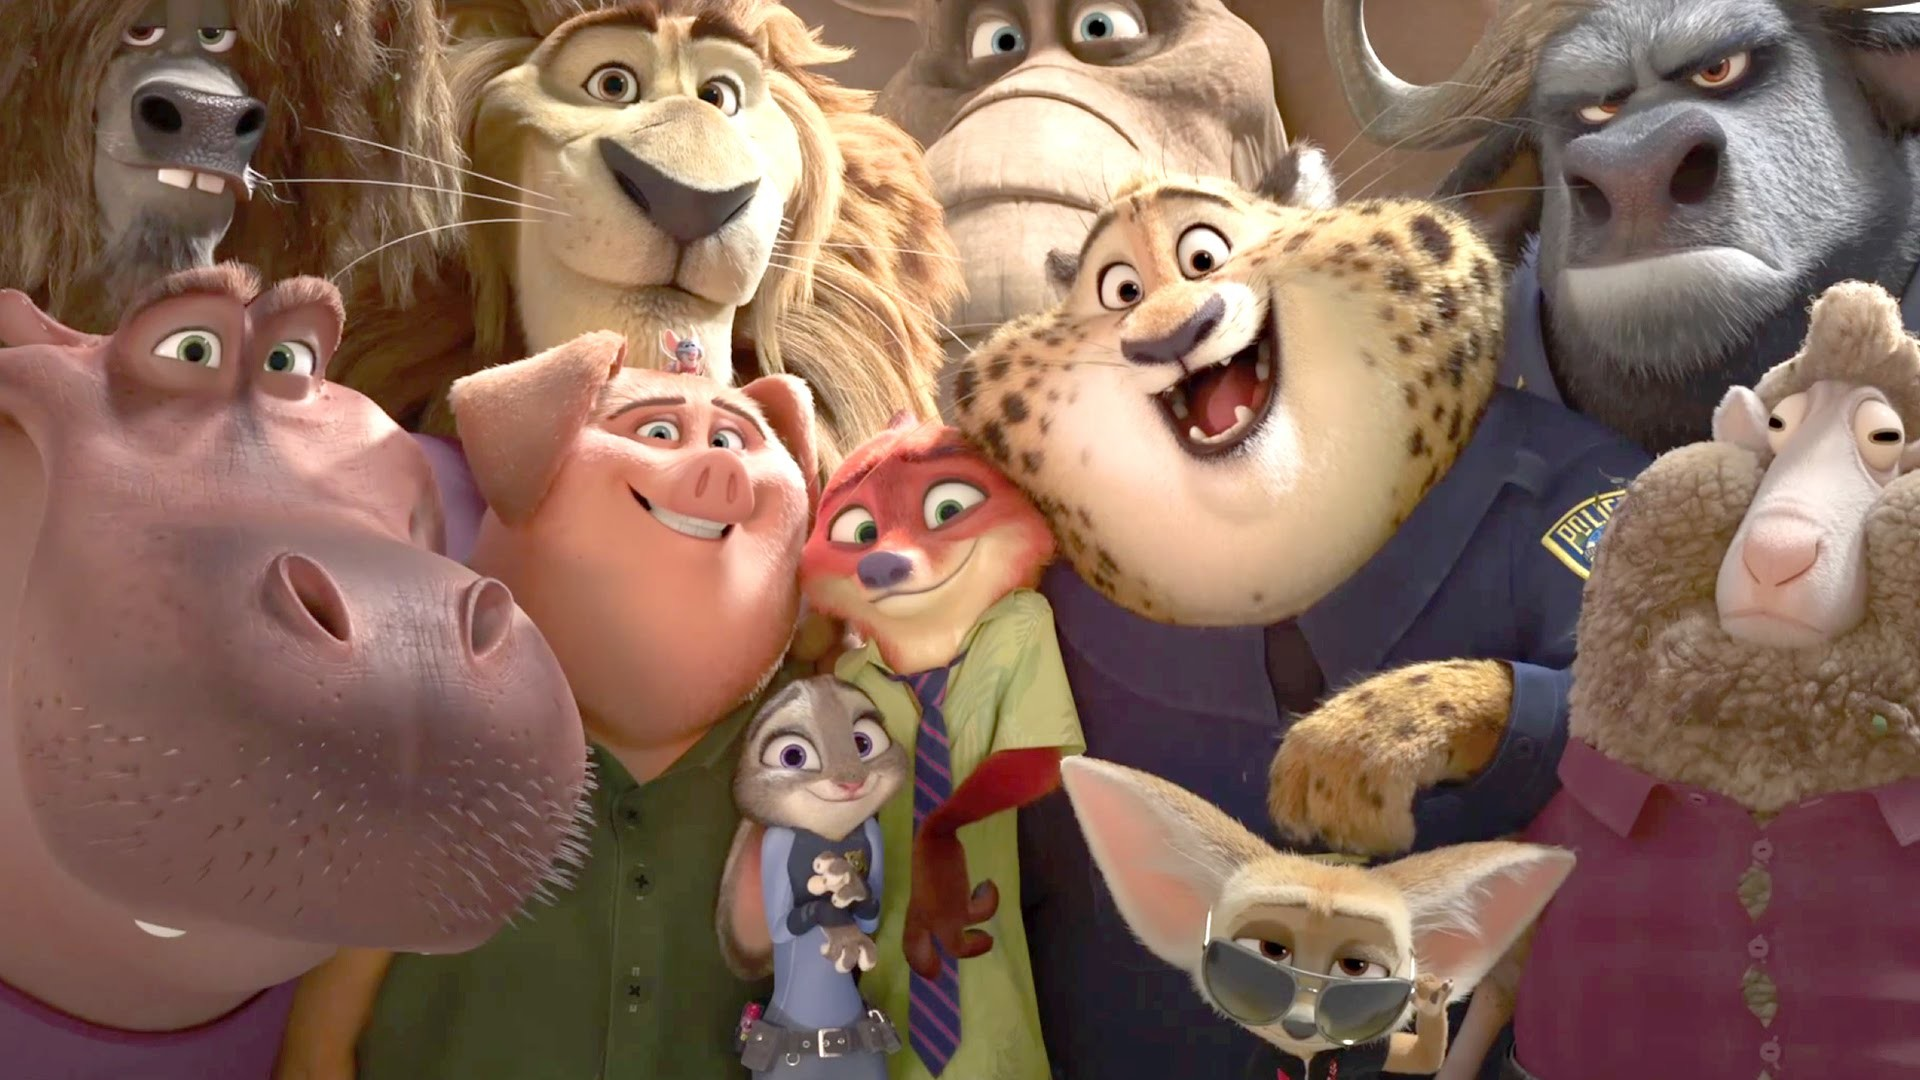 download full movie of zootopia